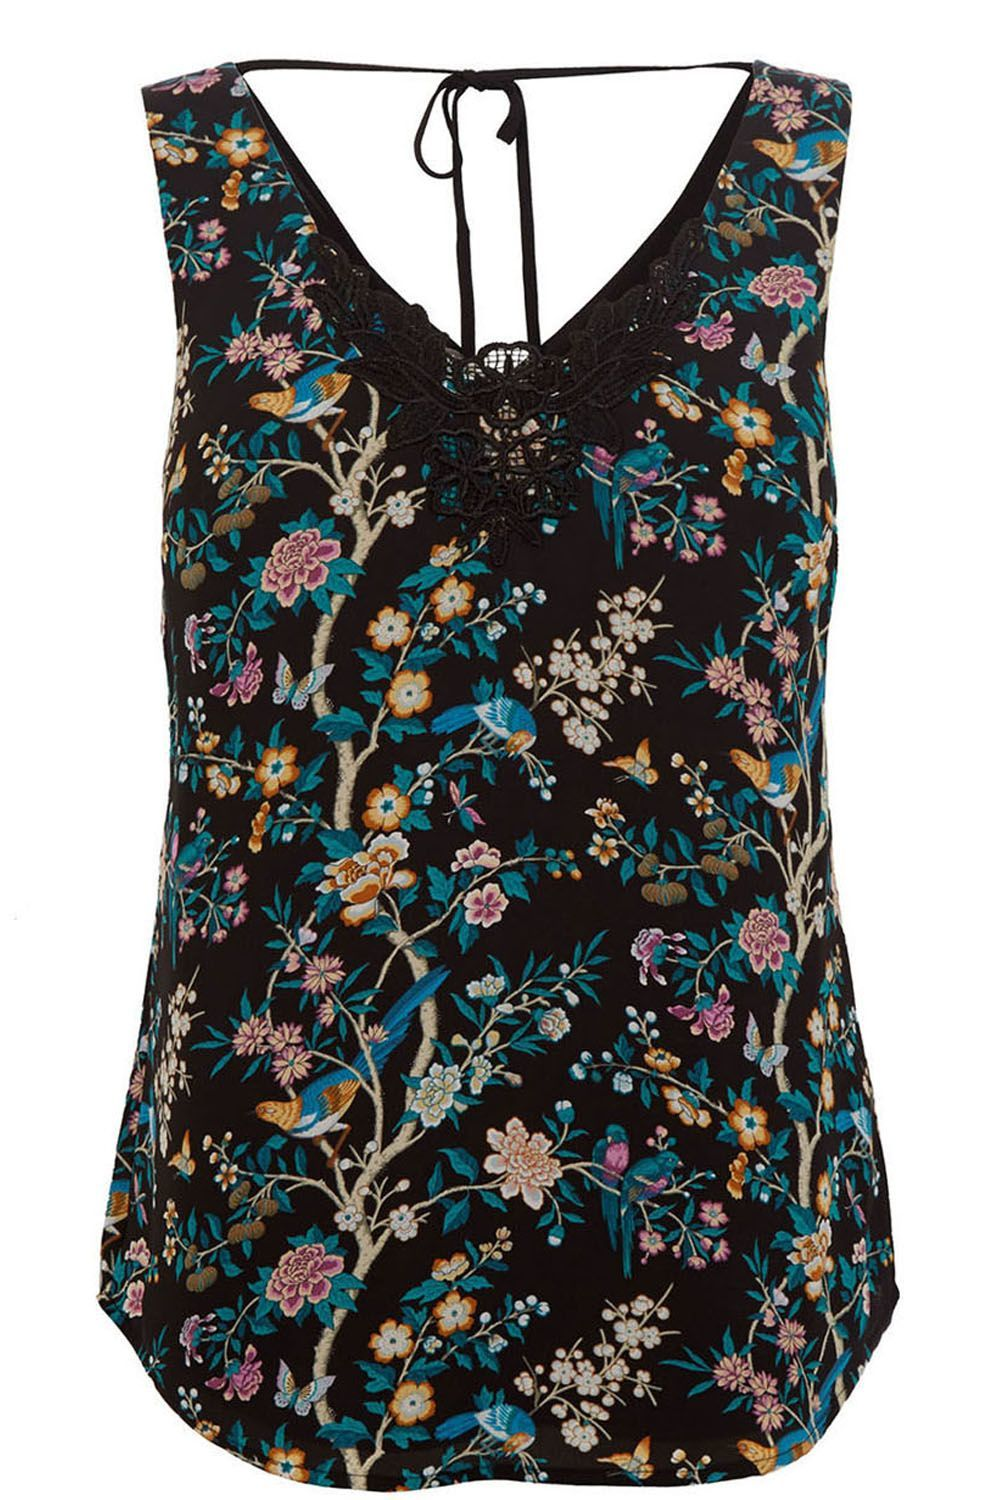 V&A Vest, Black - neckline: low v-neck; sleeve style: standard vest straps/shoulder straps; style: vest top; back detail: tie at back; secondary colour: teal; predominant colour: black; occasions: casual; length: standard; fibres: polyester/polyamide - 100%; fit: straight cut; sleeve length: sleeveless; pattern type: fabric; pattern size: standard; pattern: florals; texture group: woven light midweight; embellishment: lace; multicoloured: multicoloured; season: a/w 2016; wardrobe: highlight